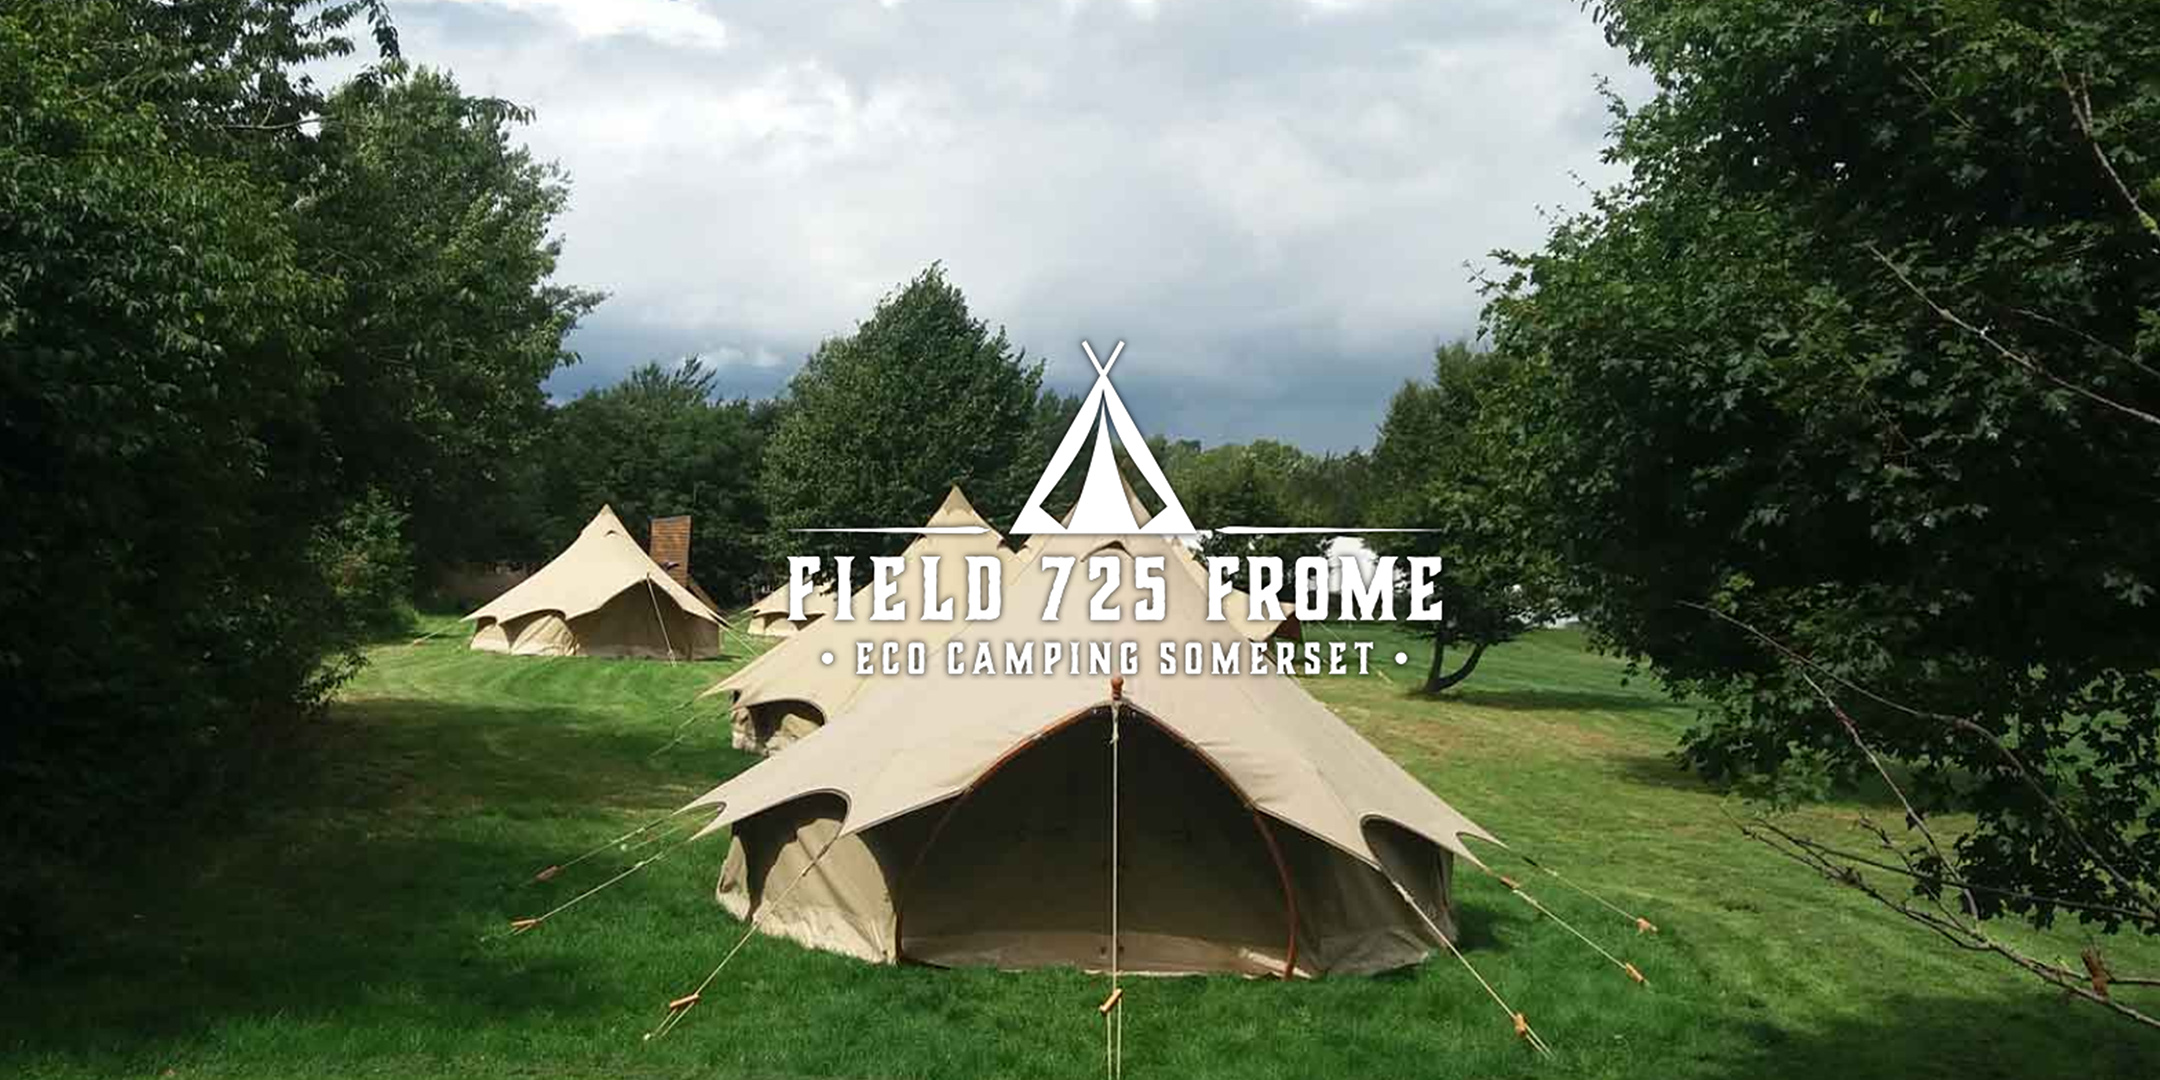 One of the bell tents in FIeld 725 in Somerset